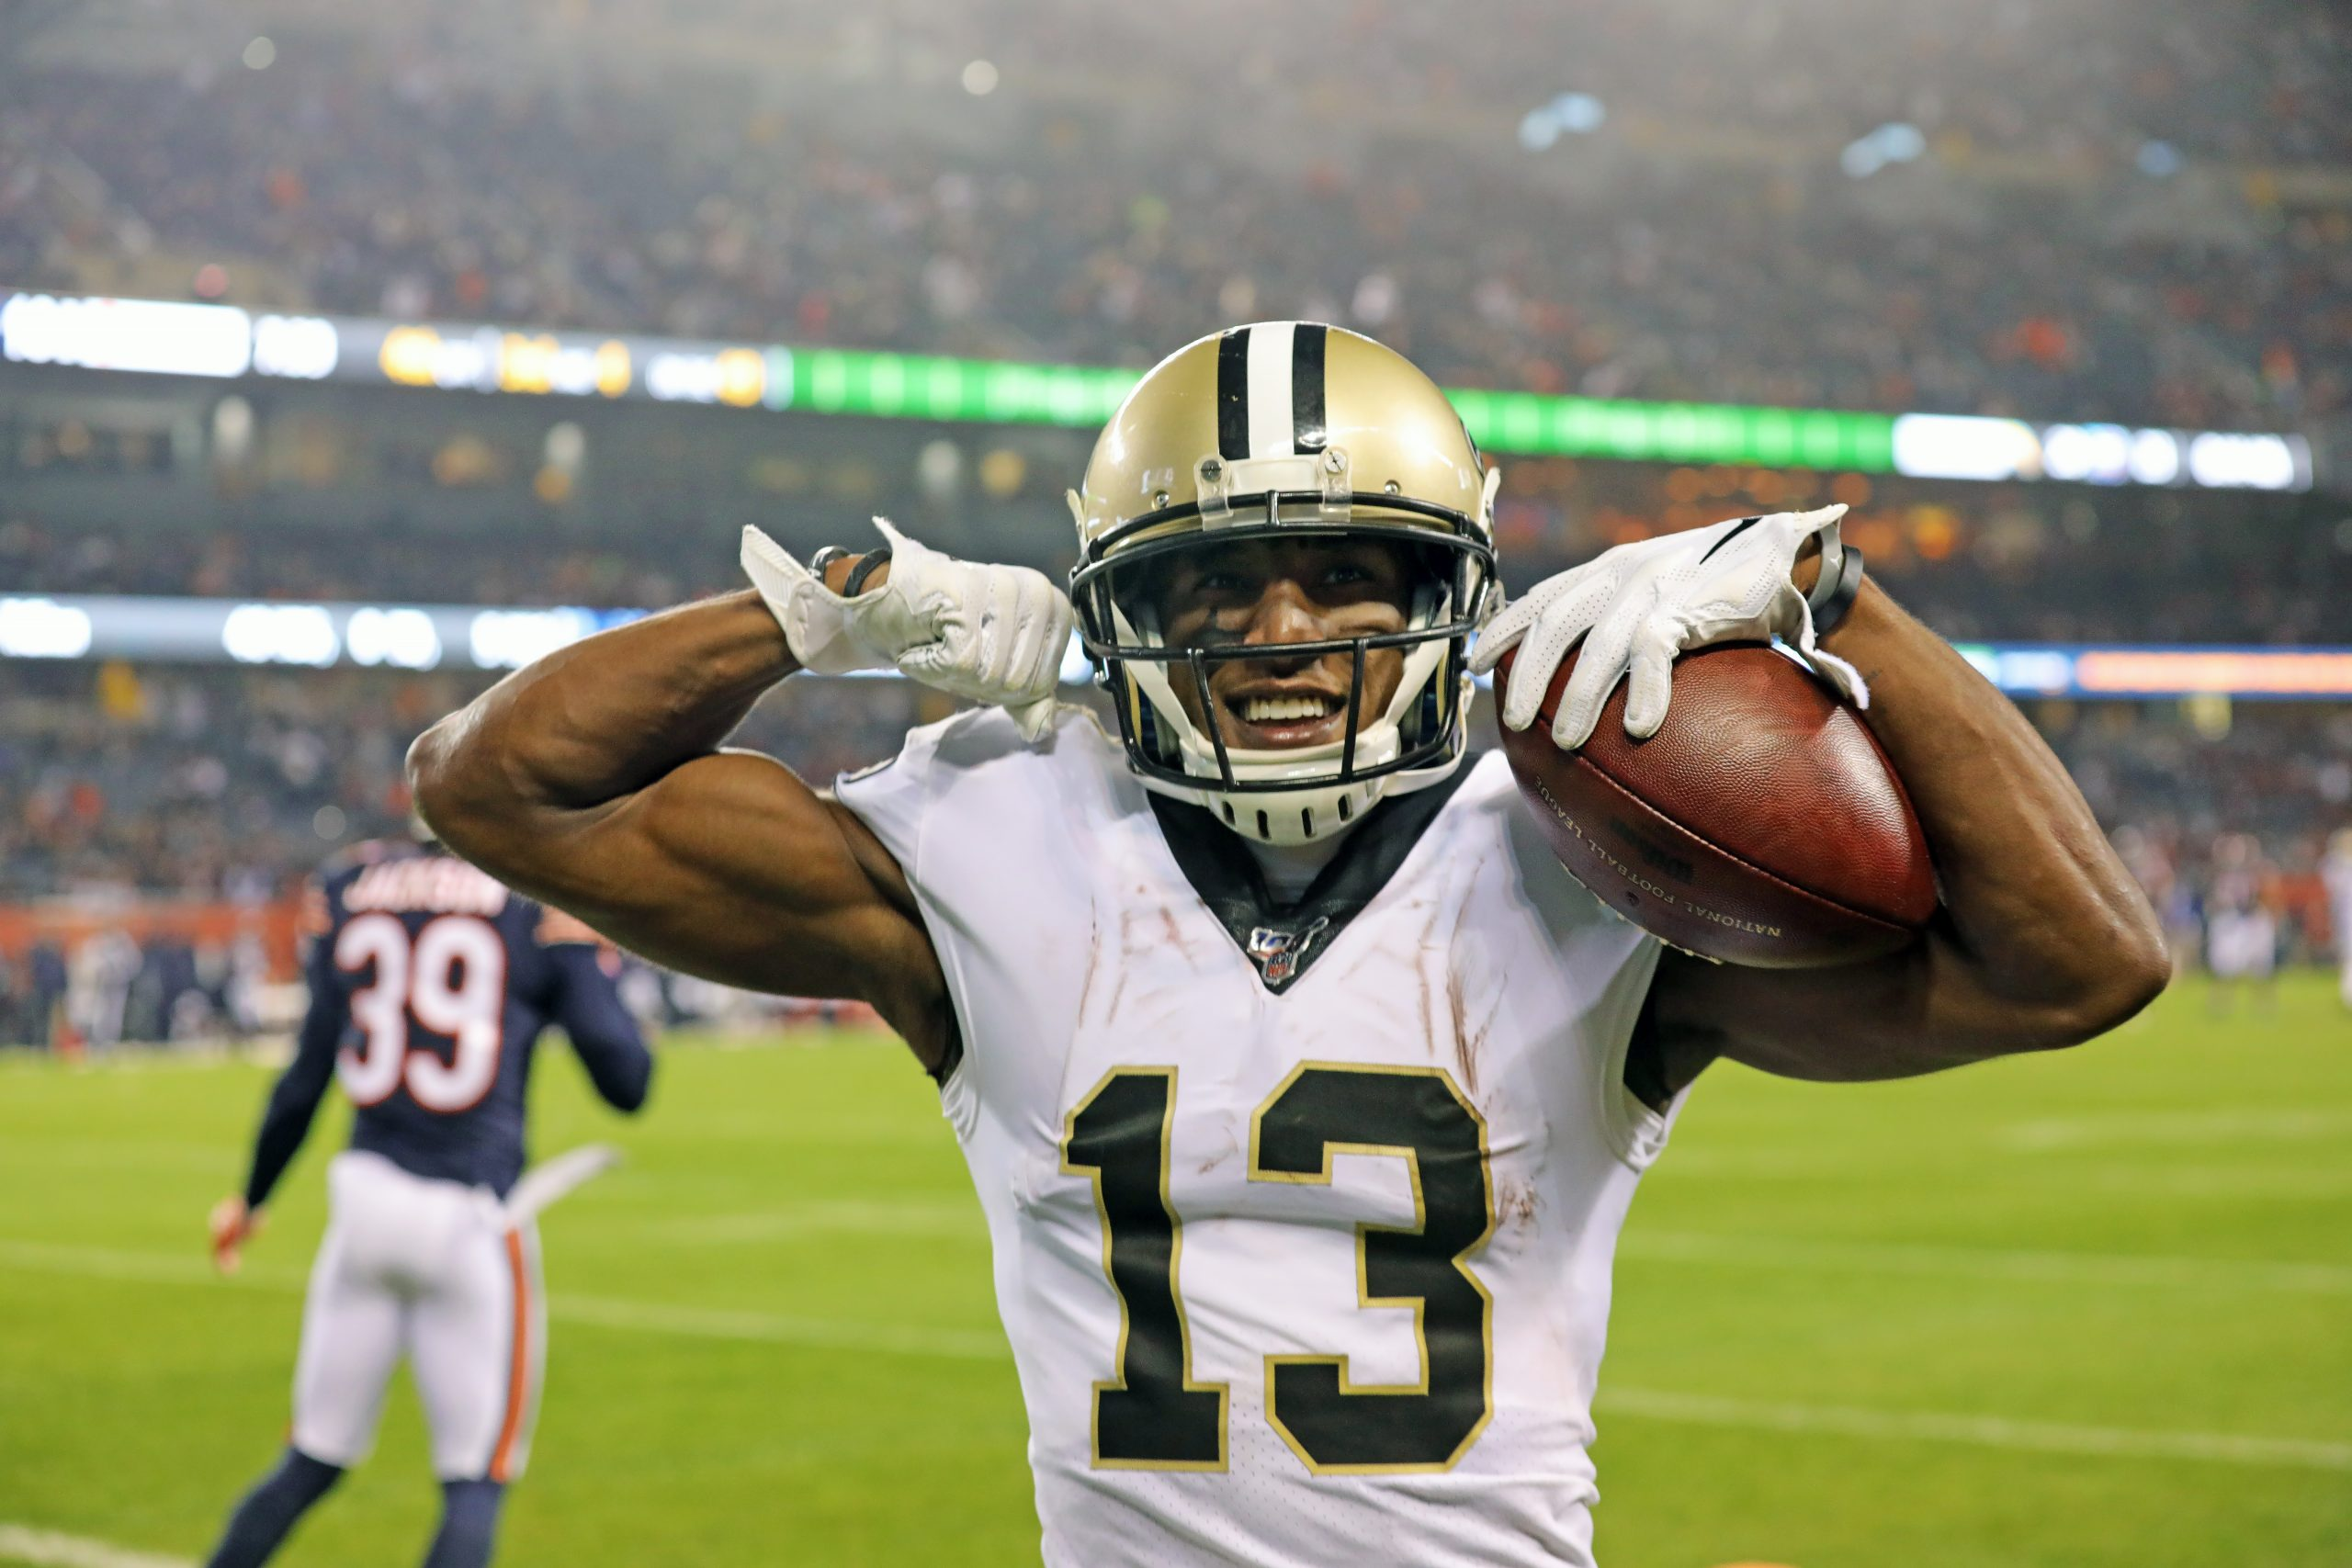 CHICAGO, IL - OCTOBER 20: New Orleans Saints wide receiver Michael Thomas (13) reacts to scoring a touchdown against Ch